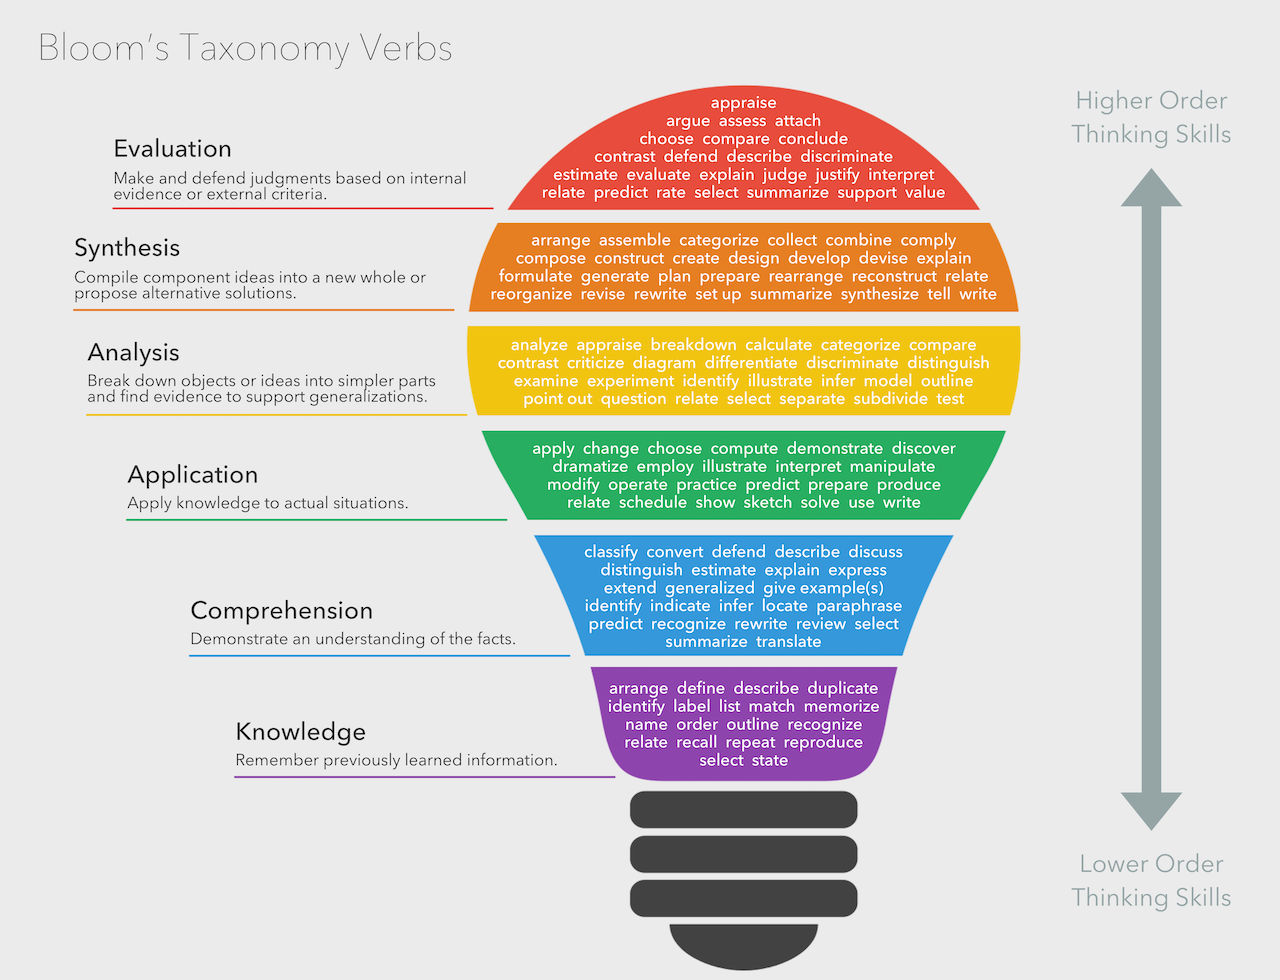 A list of verbs aligned with Bloom's Taxonomy